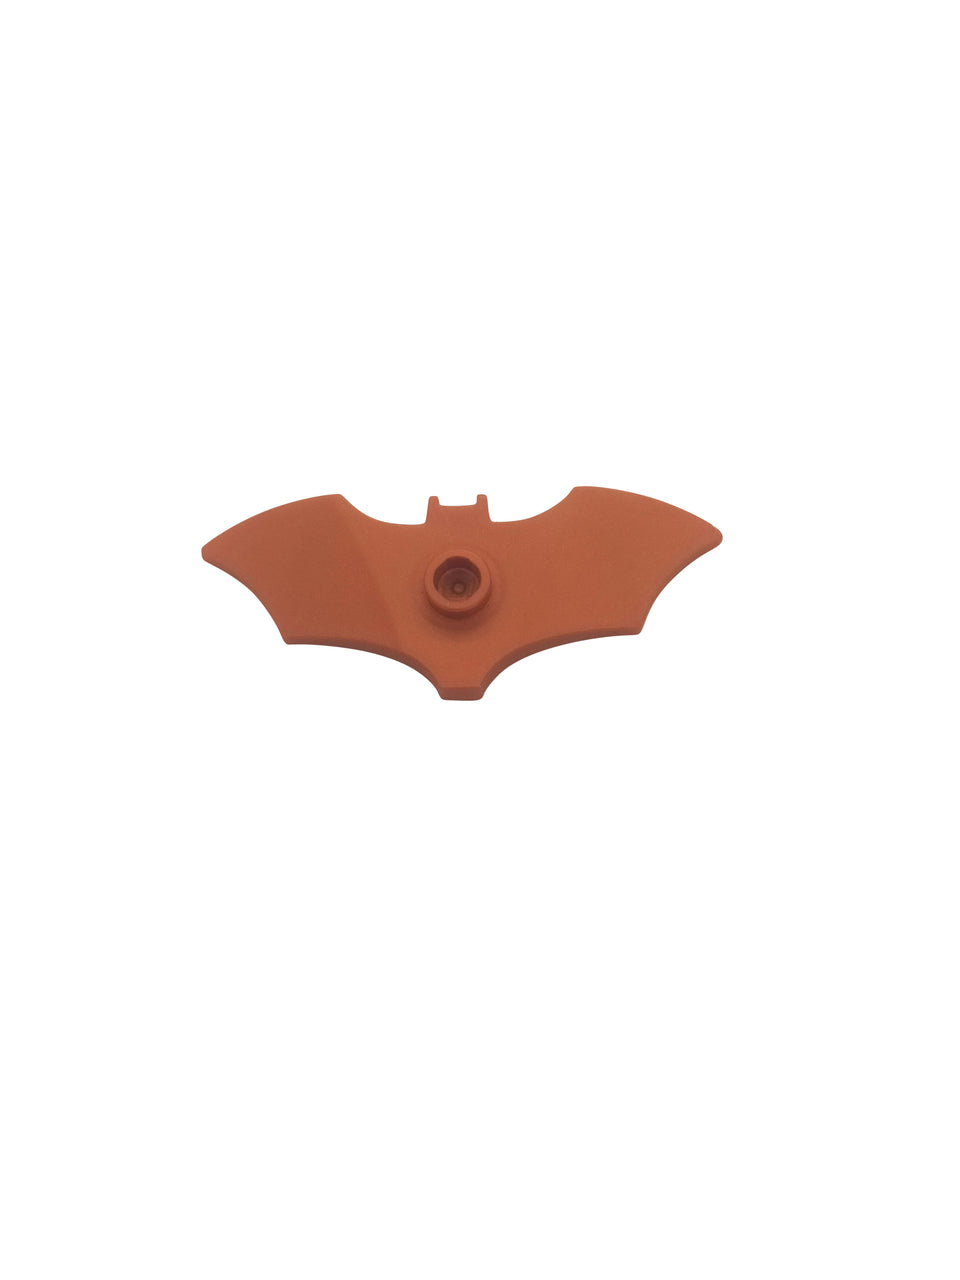 Batman's bat symbol